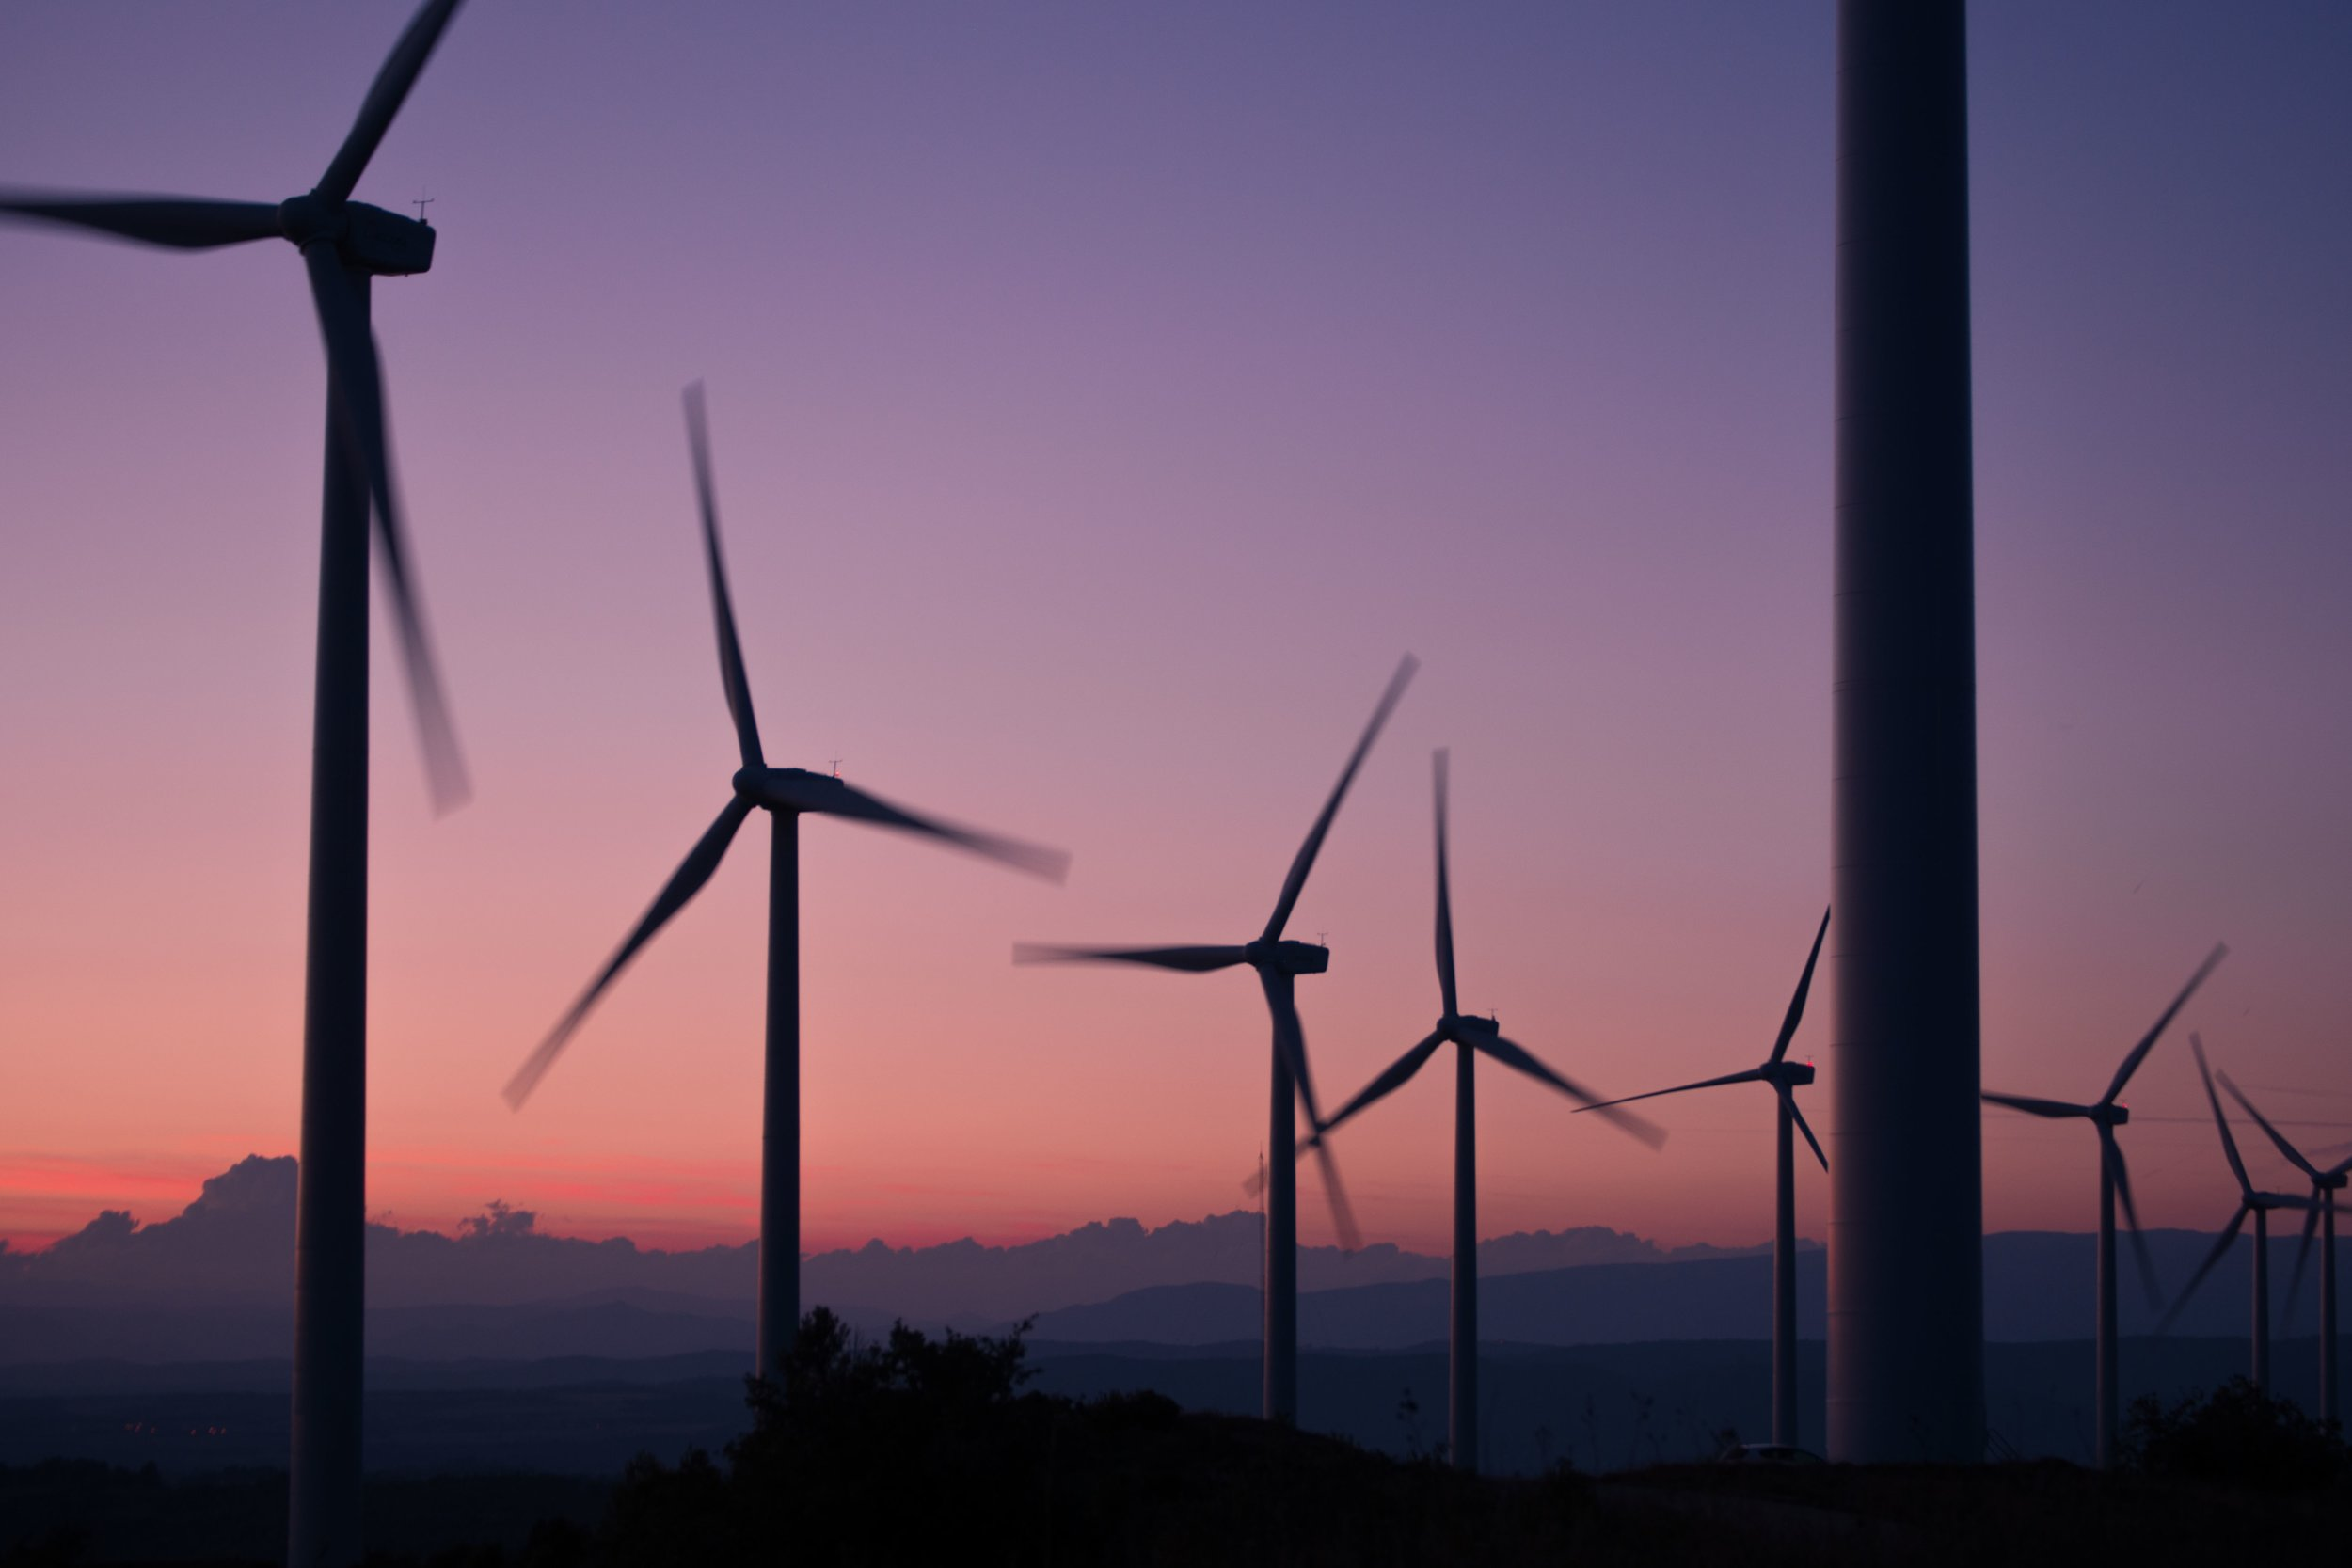 Energy   Over 20 years' experience in providing design and manufacture solutions to the energy industry's core sectors: renewables, oil & gas and gas turbines